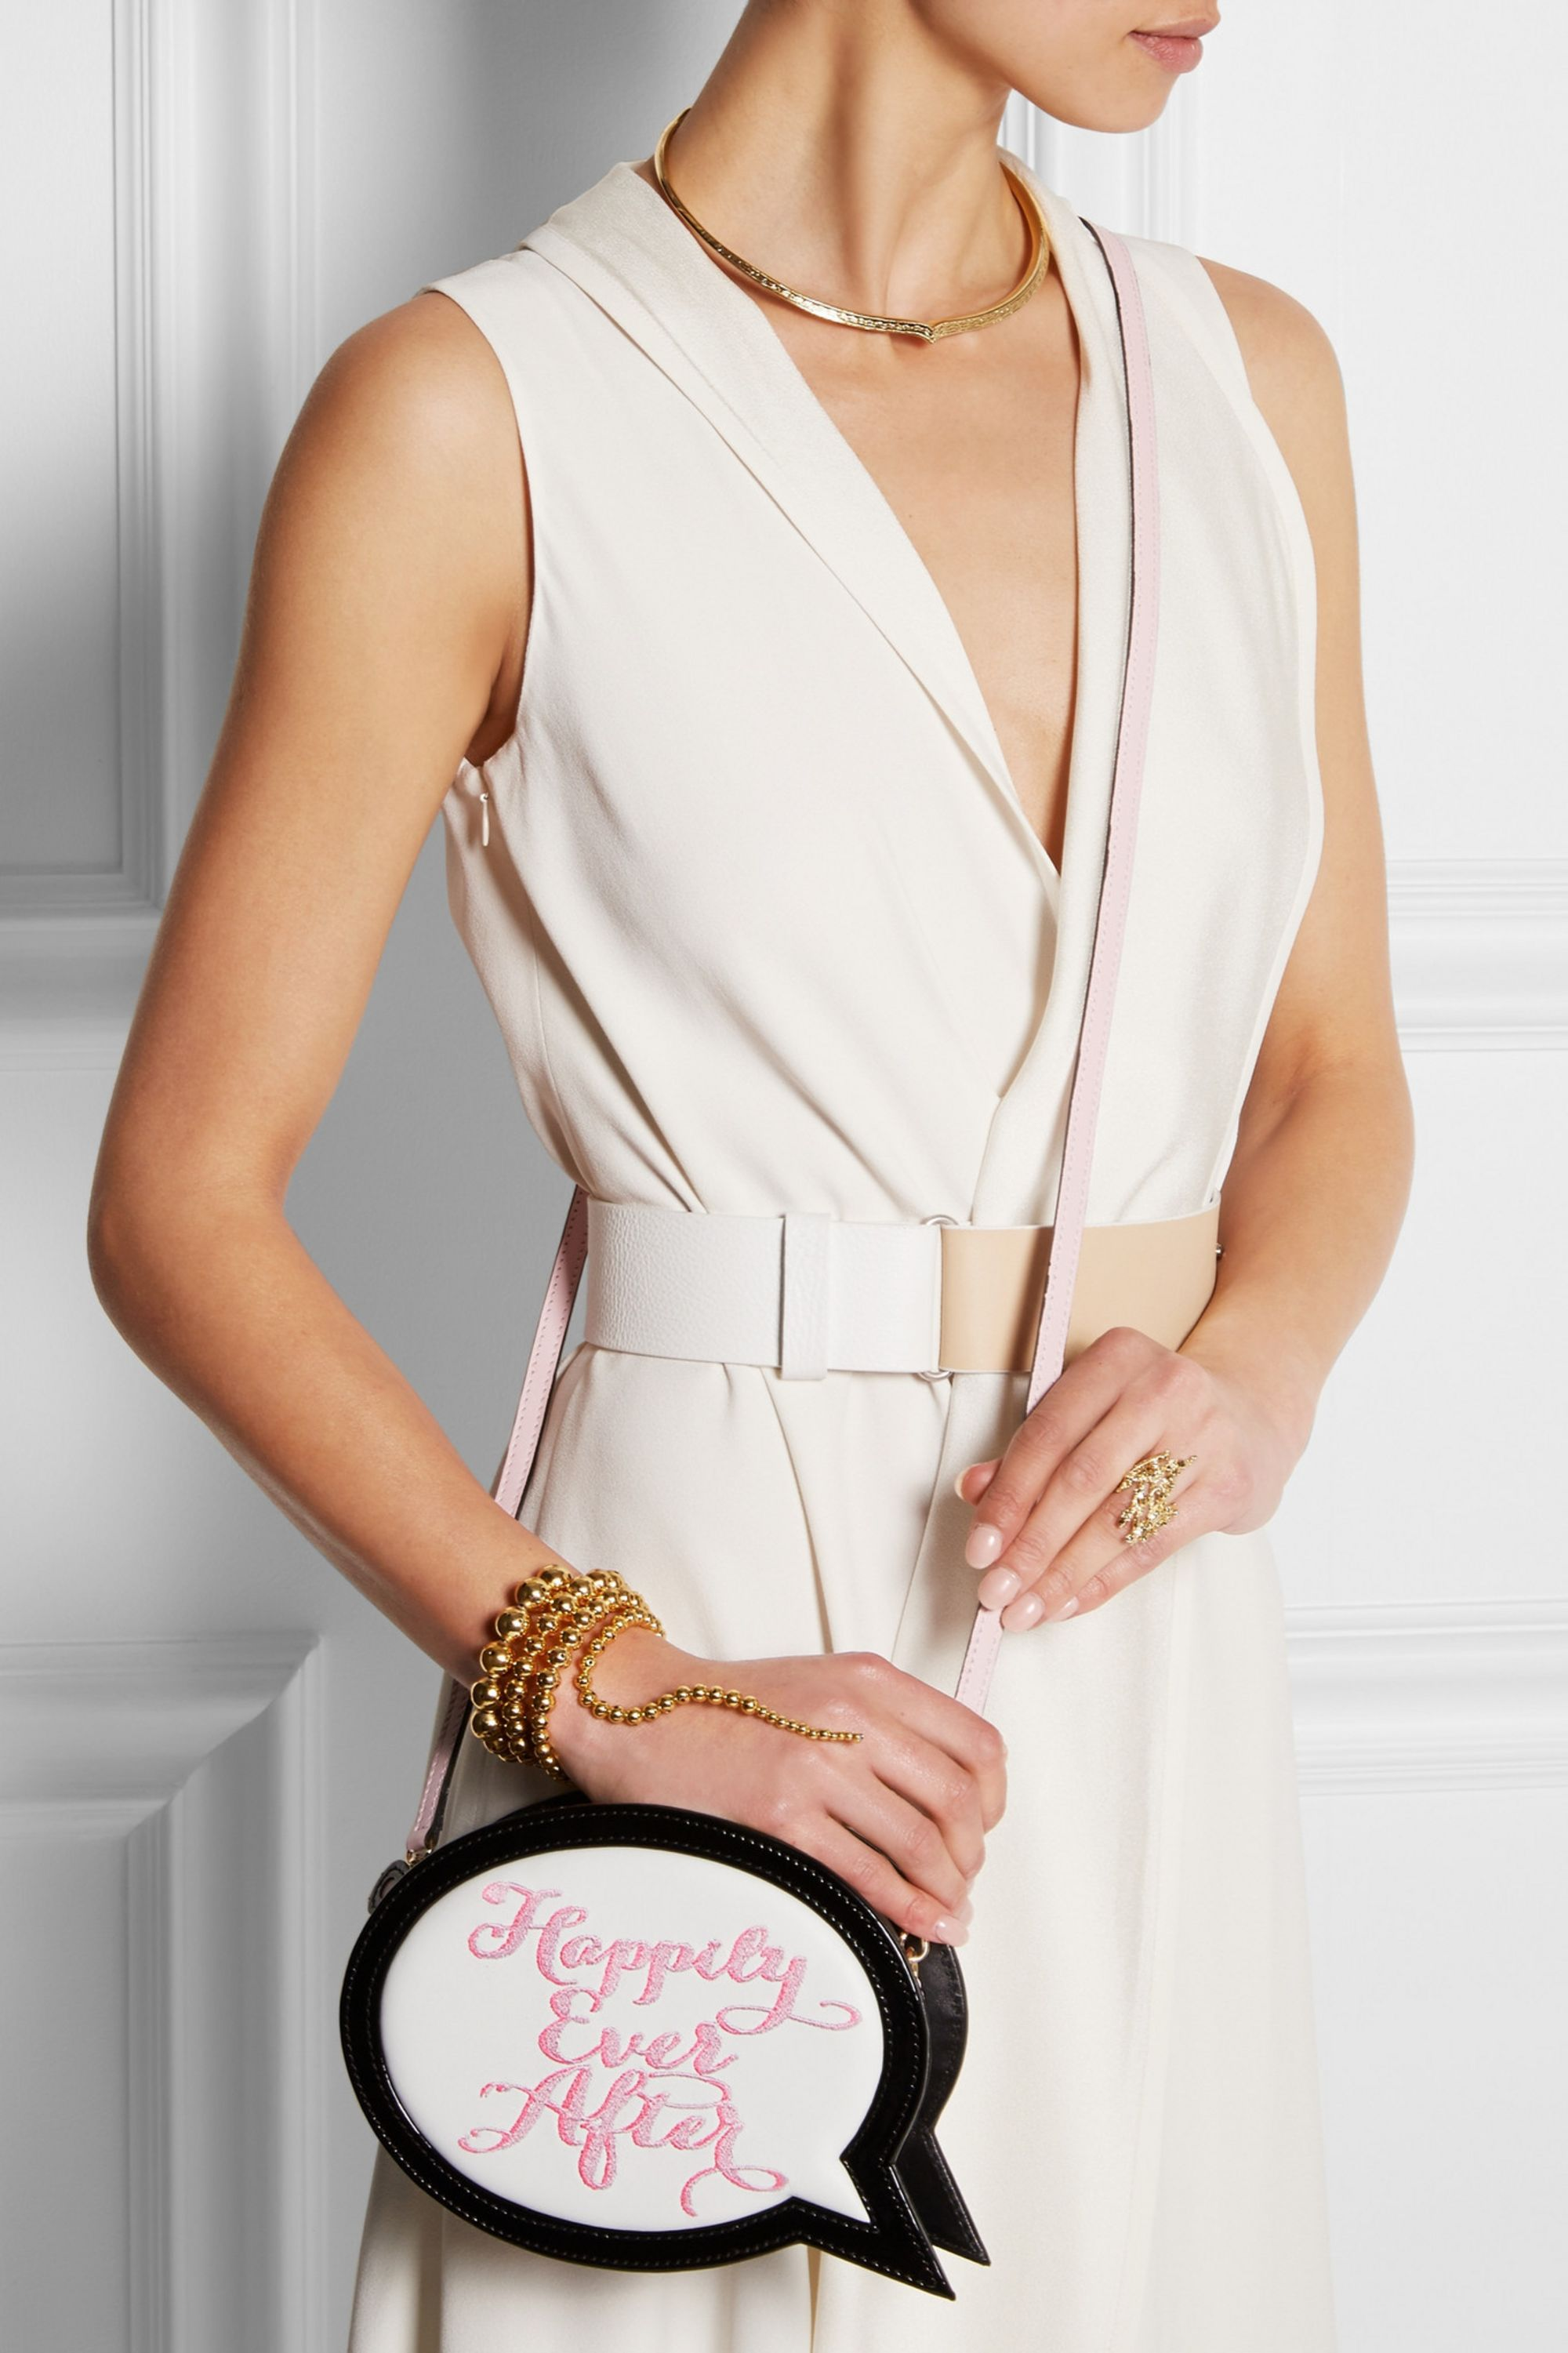 Sophia Webster Pochette en cuir brodé Happily Ever After